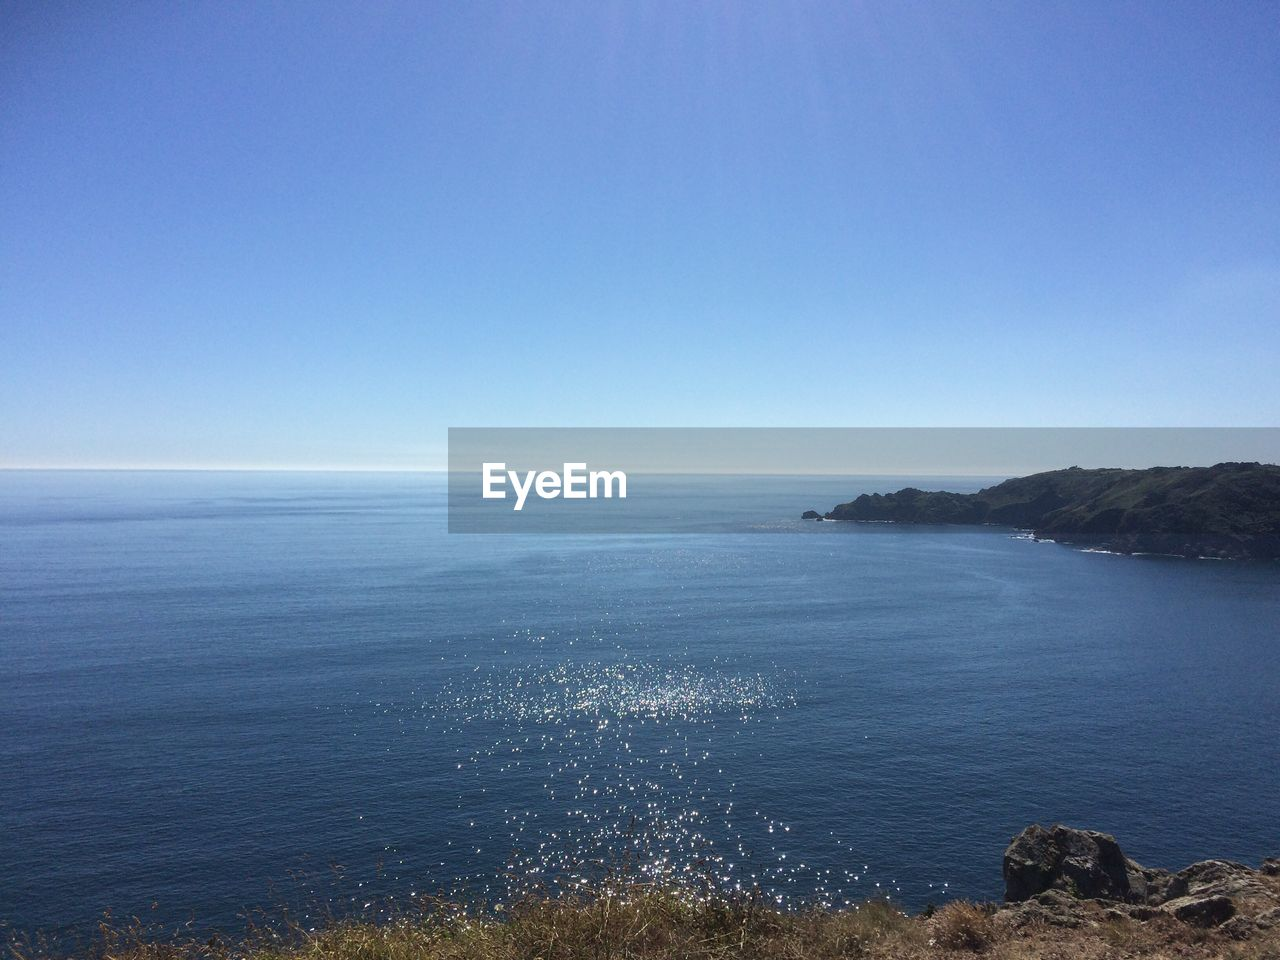 sea, nature, tranquil scene, beauty in nature, scenics, tranquility, horizon over water, water, clear sky, blue, copy space, idyllic, no people, day, outdoors, cliff, sky, scenery